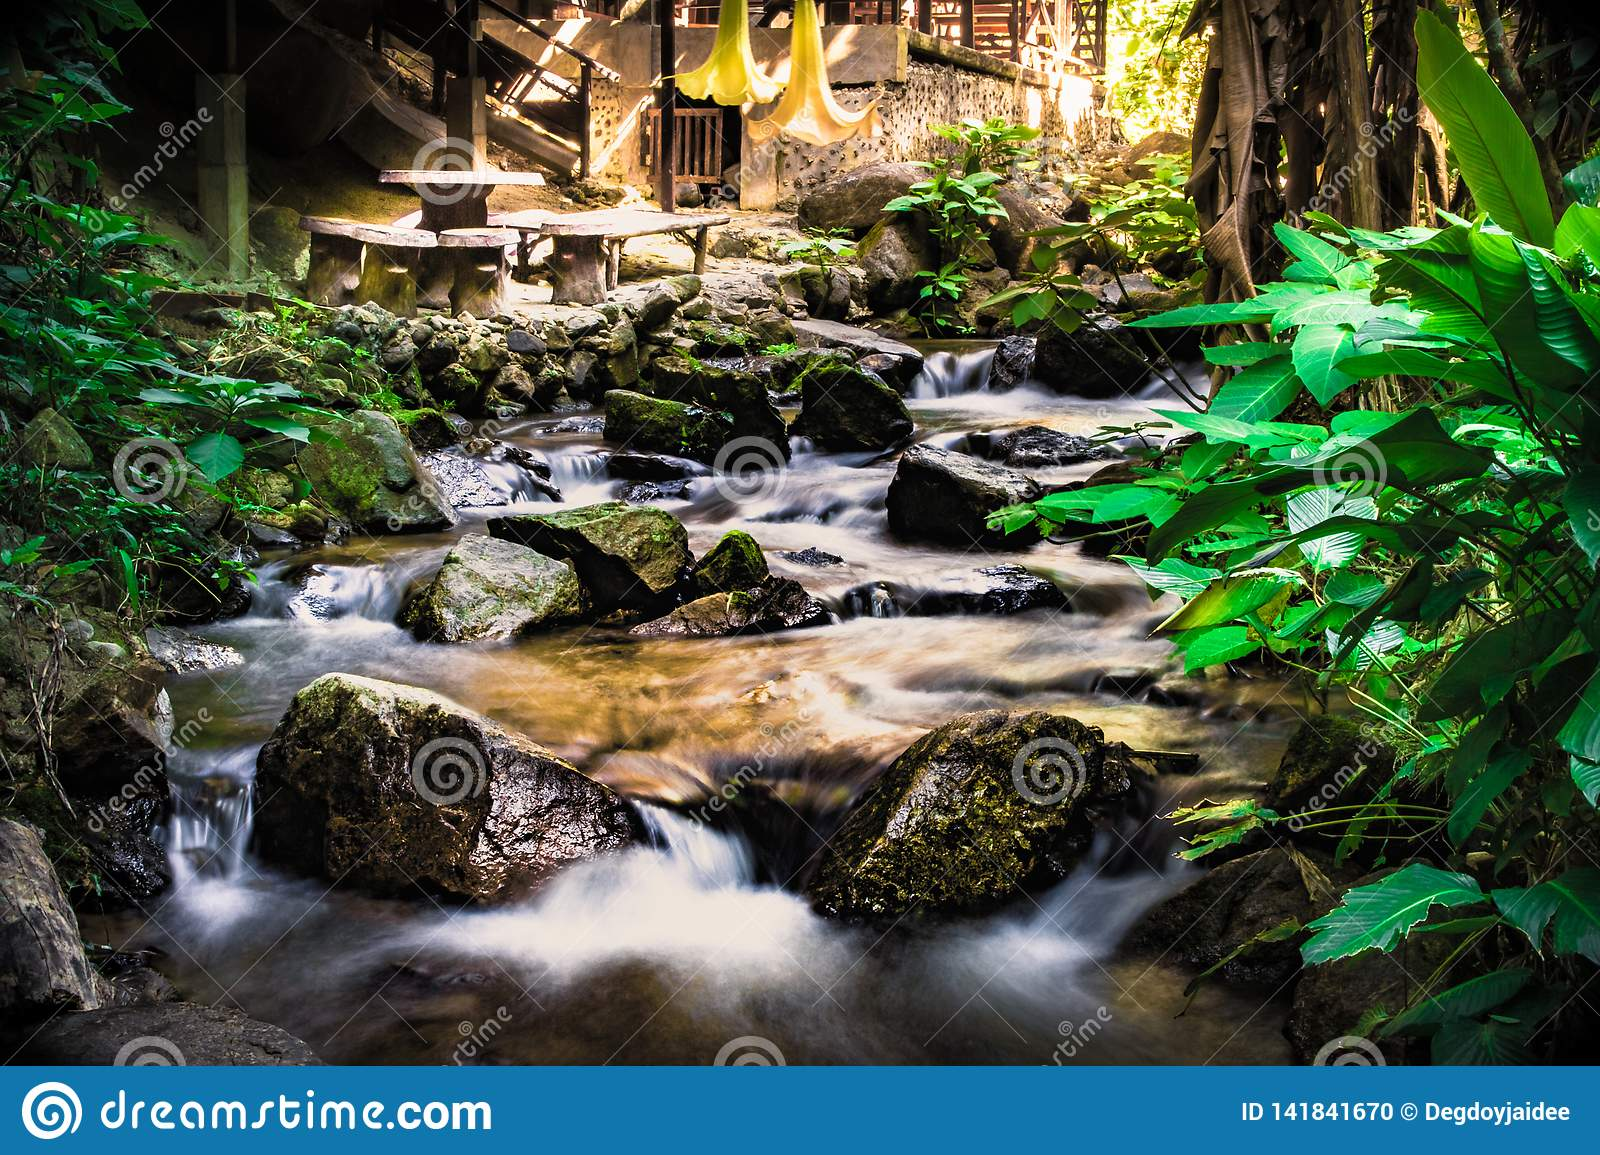 Natural winter waterfalls, river views, lush forest parks, background is wet with rocks.